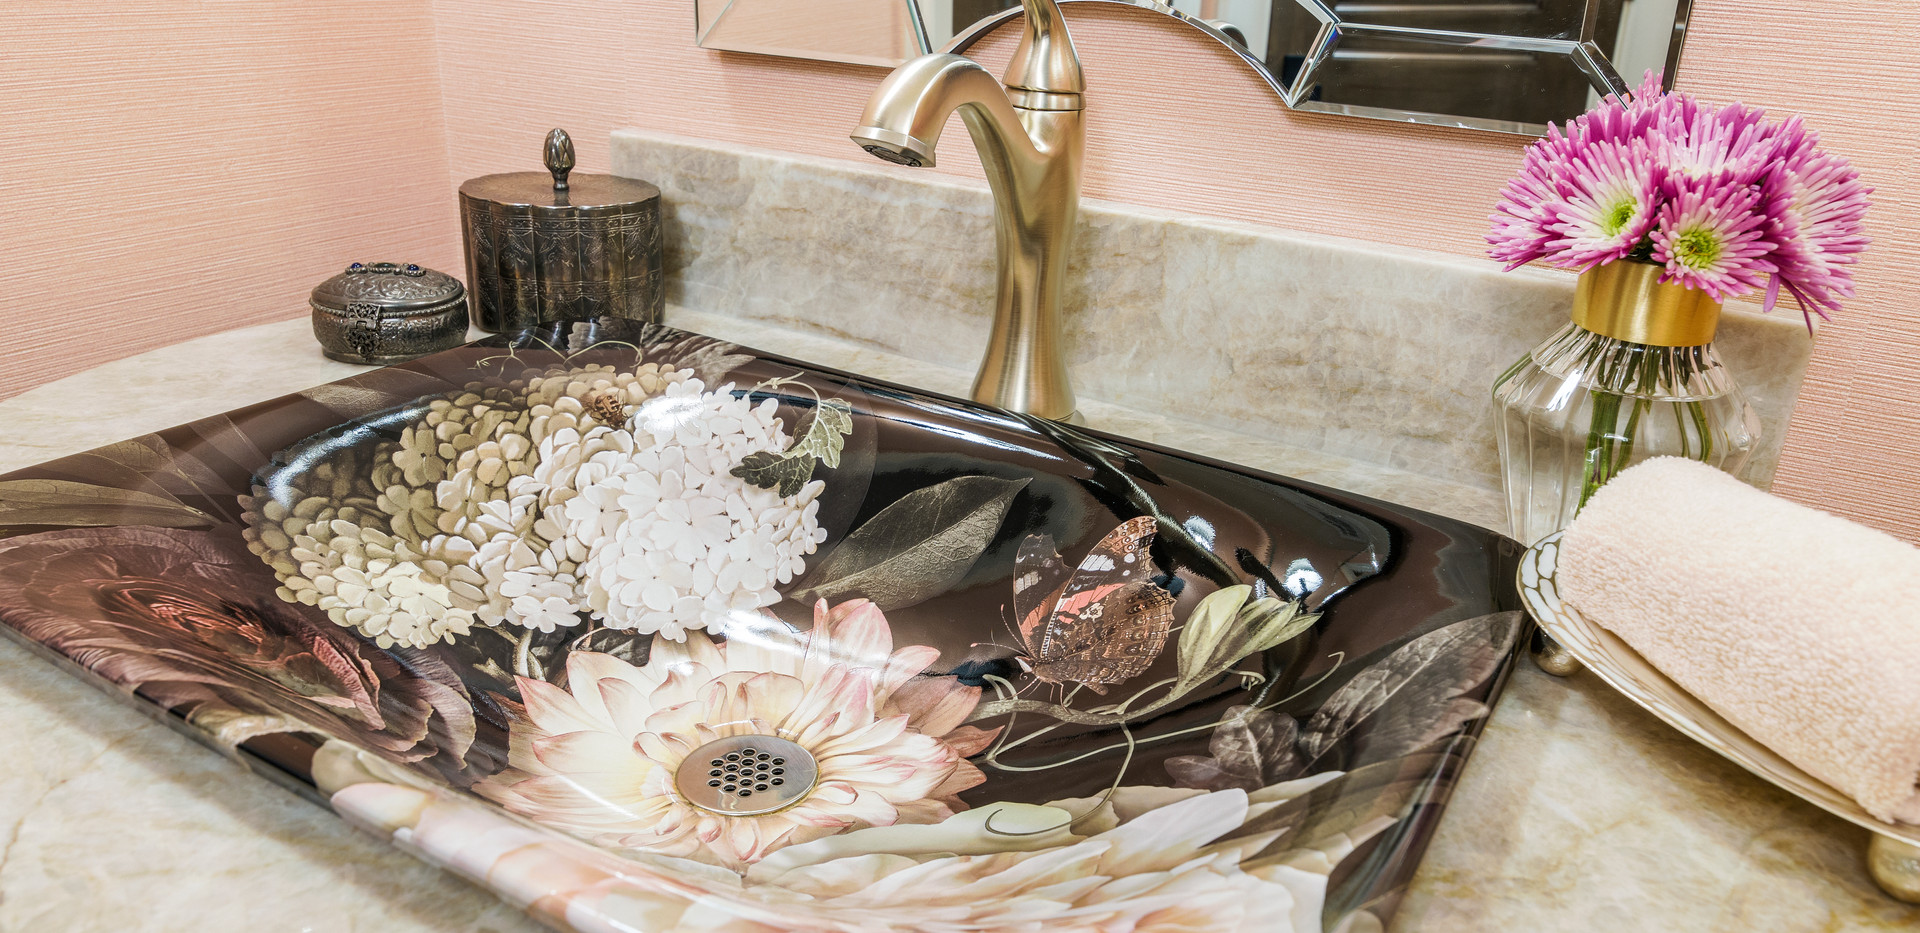 Floral Statement Sink